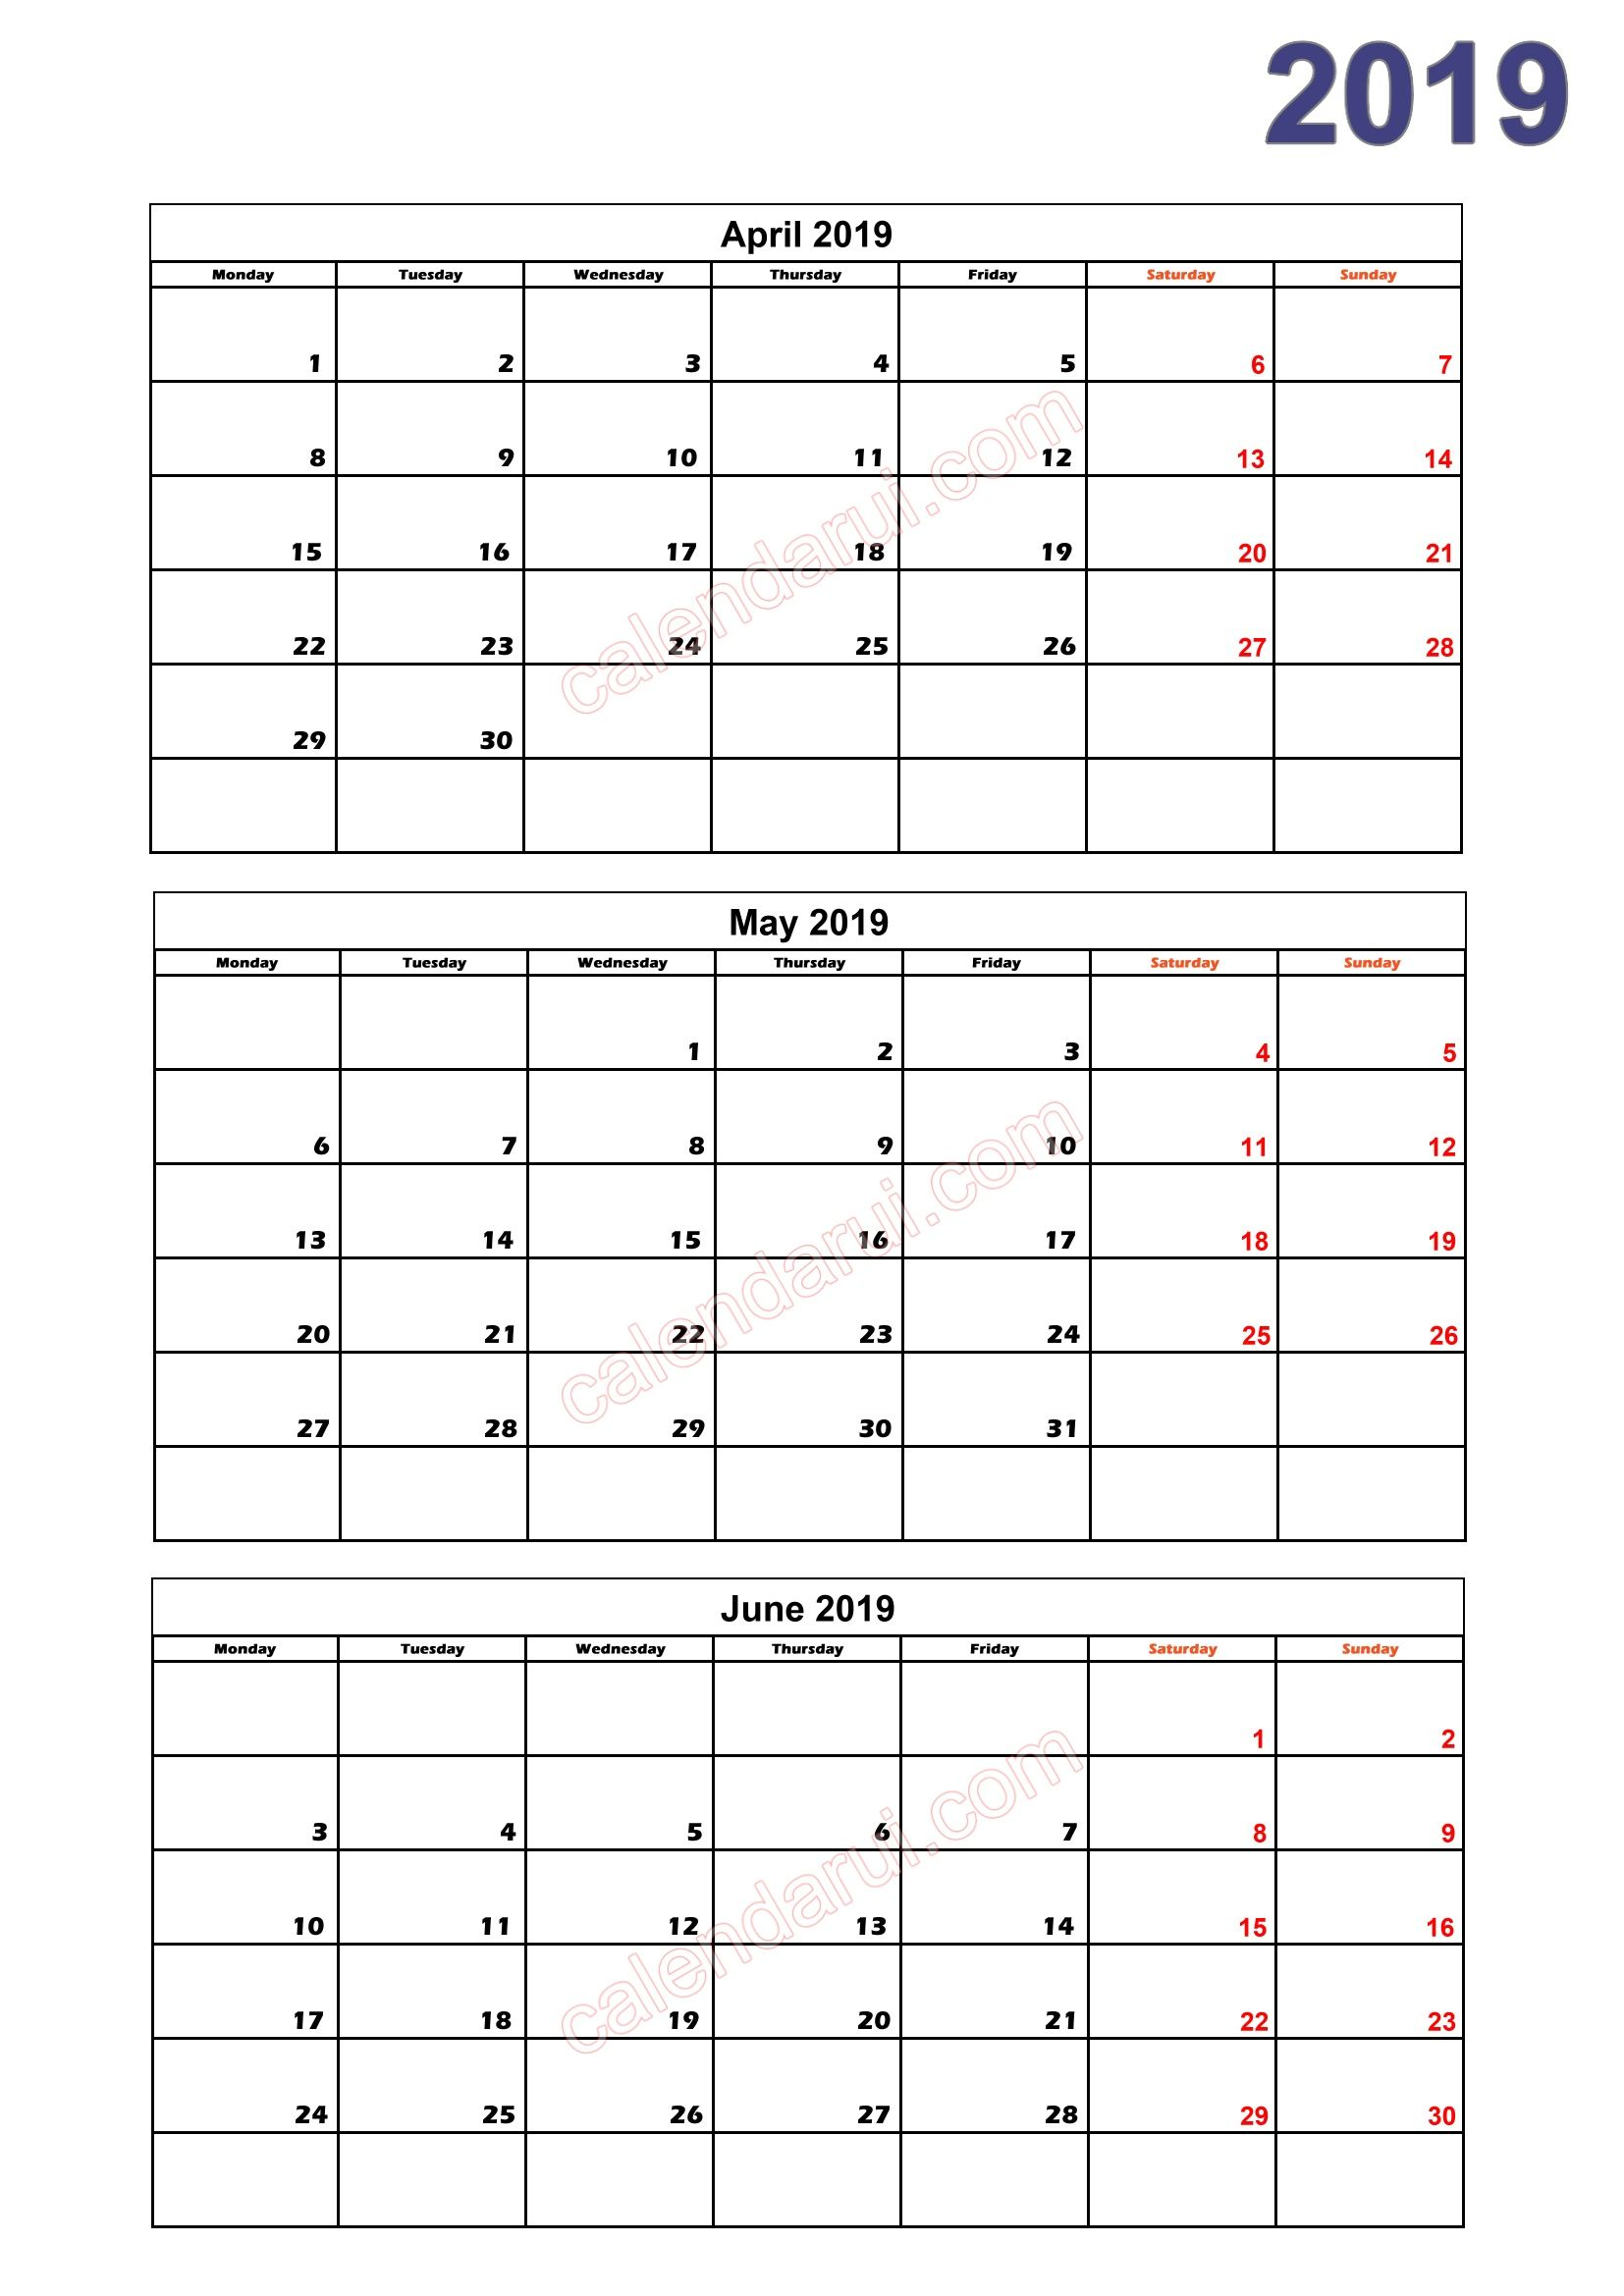 Quarterly Calendar Template 2019 2 Quarter 2 Calendar 2019 Printable Download Free_2 | 2019